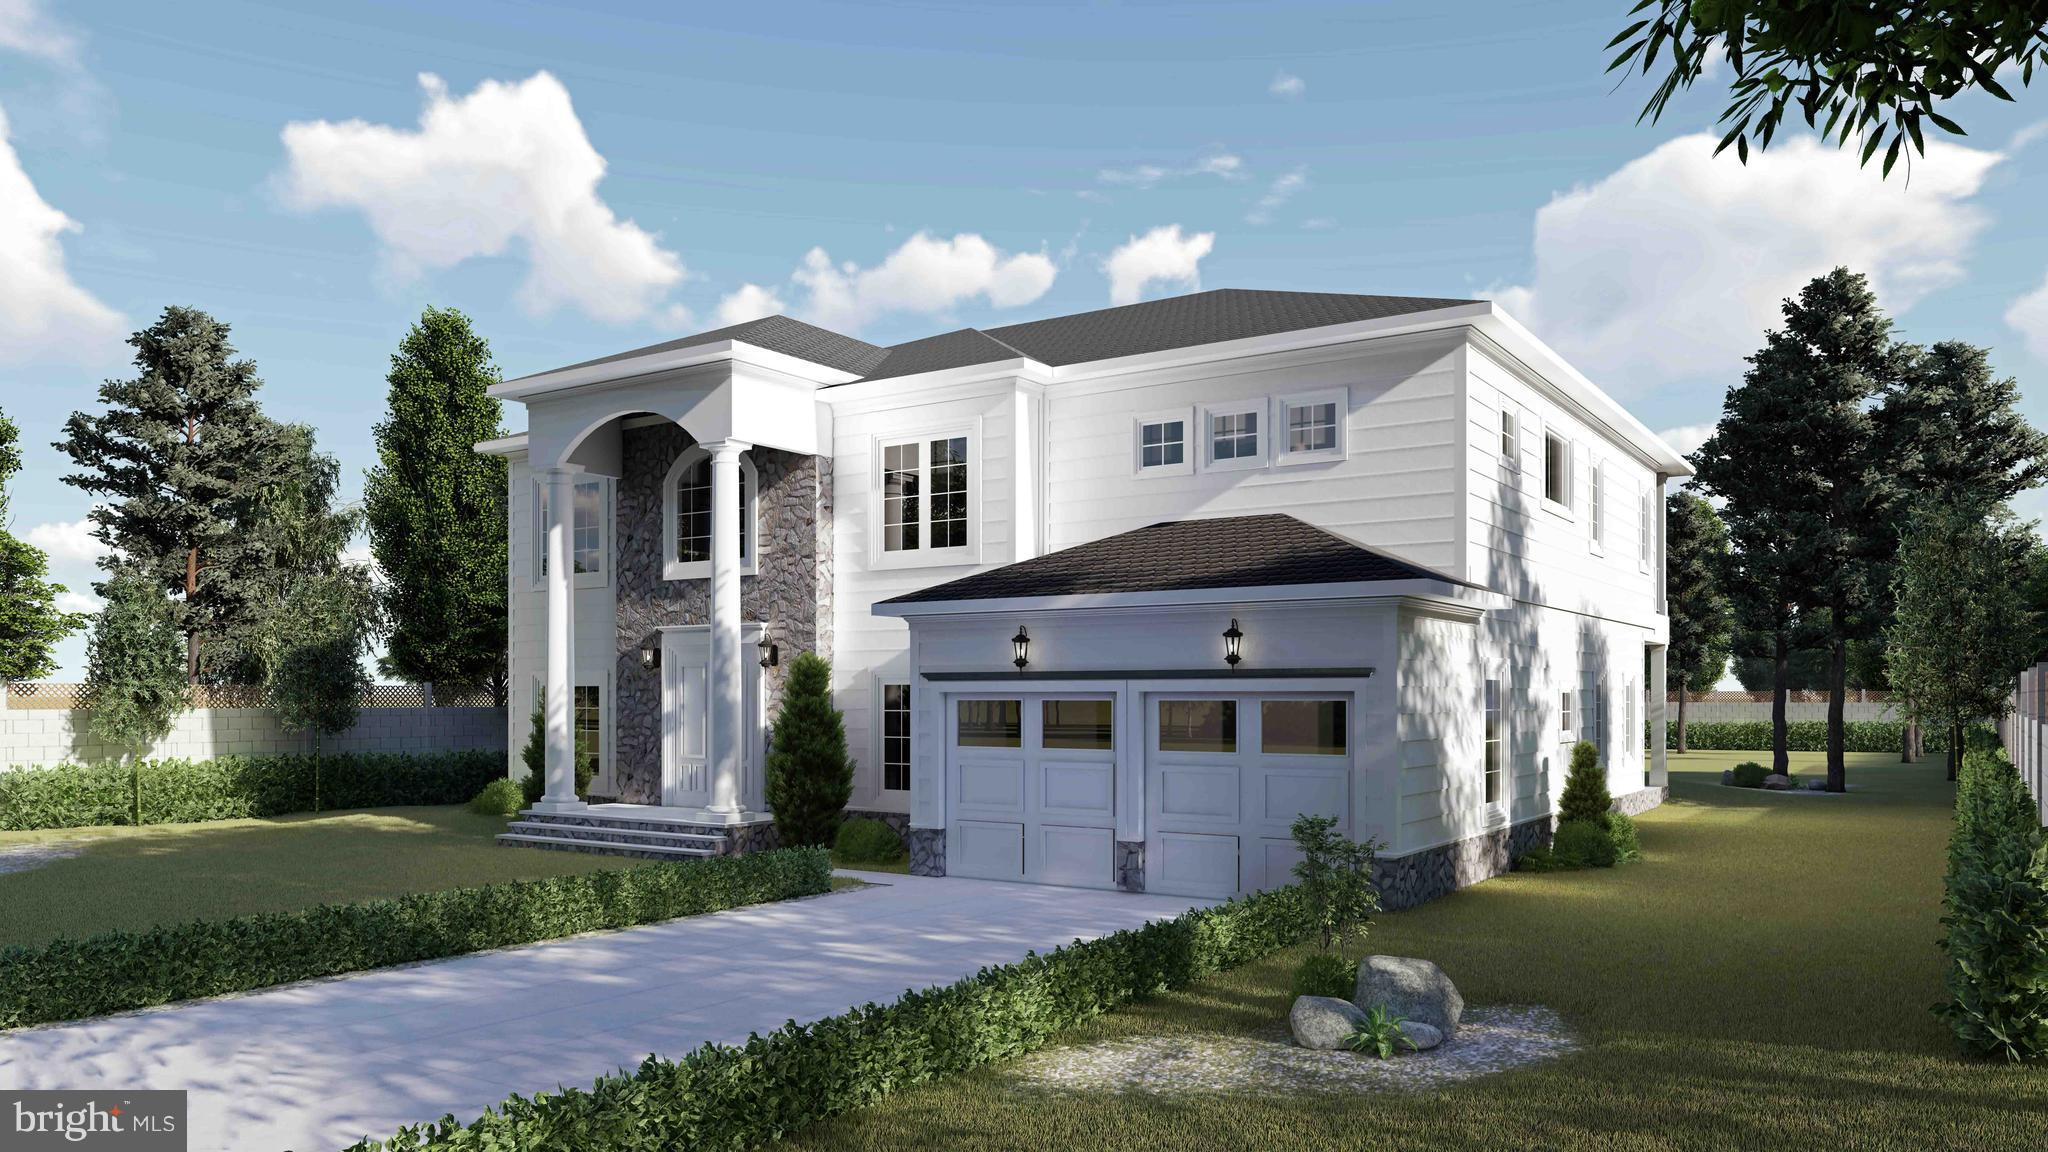 Spectacular NEW Construction on Gorgeous Private 1/2 acre lot in the heart of Alexandria with expected delivery Early Spring 2019! This Spectacular estate will feature 6BR, 6.55BA's and over 6700 sq ft of finished space! Main level In-Law suite w/FB! Upper level boast 3 additional BR's and Grand Master Suite w/ Spa Bath! Lwr lvl rec rm with wet bar, home theater and walk out to private yard!